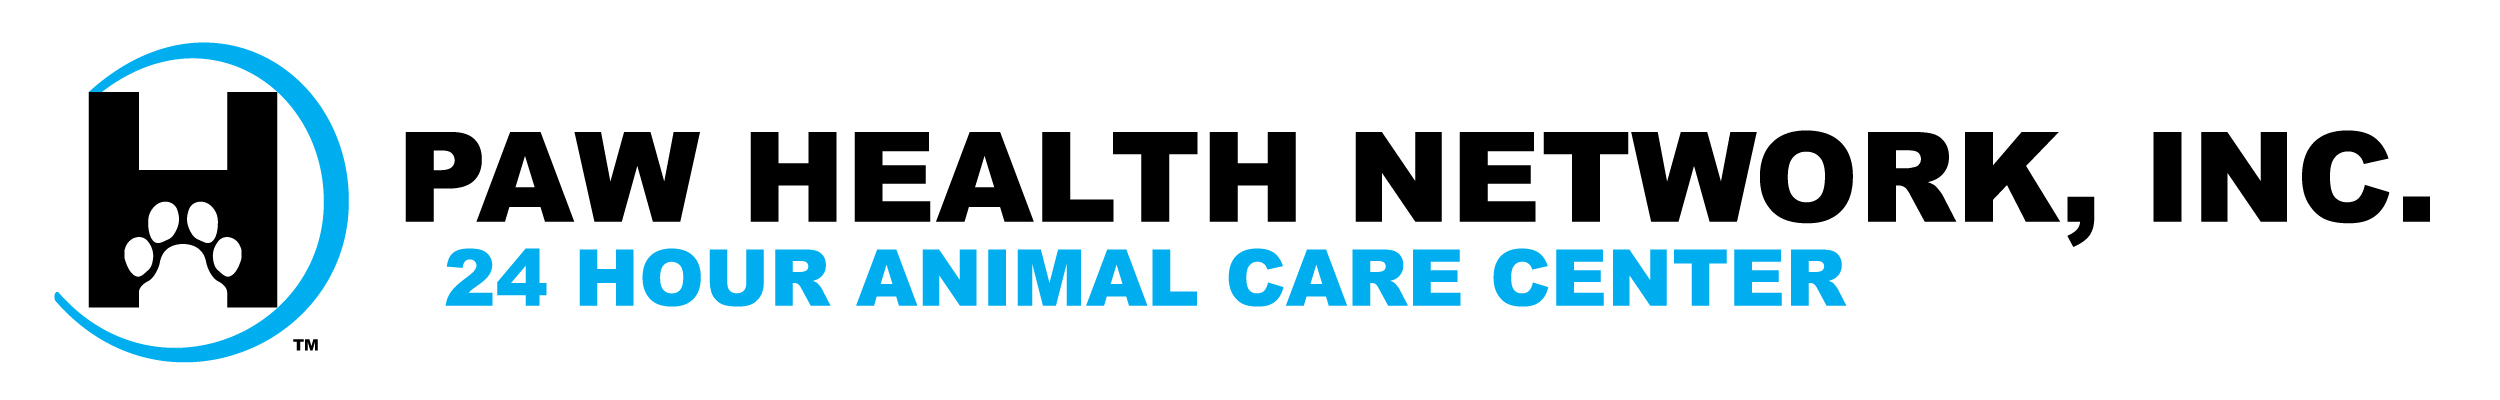 PAW Health-24 Hour Animal Care Center logo